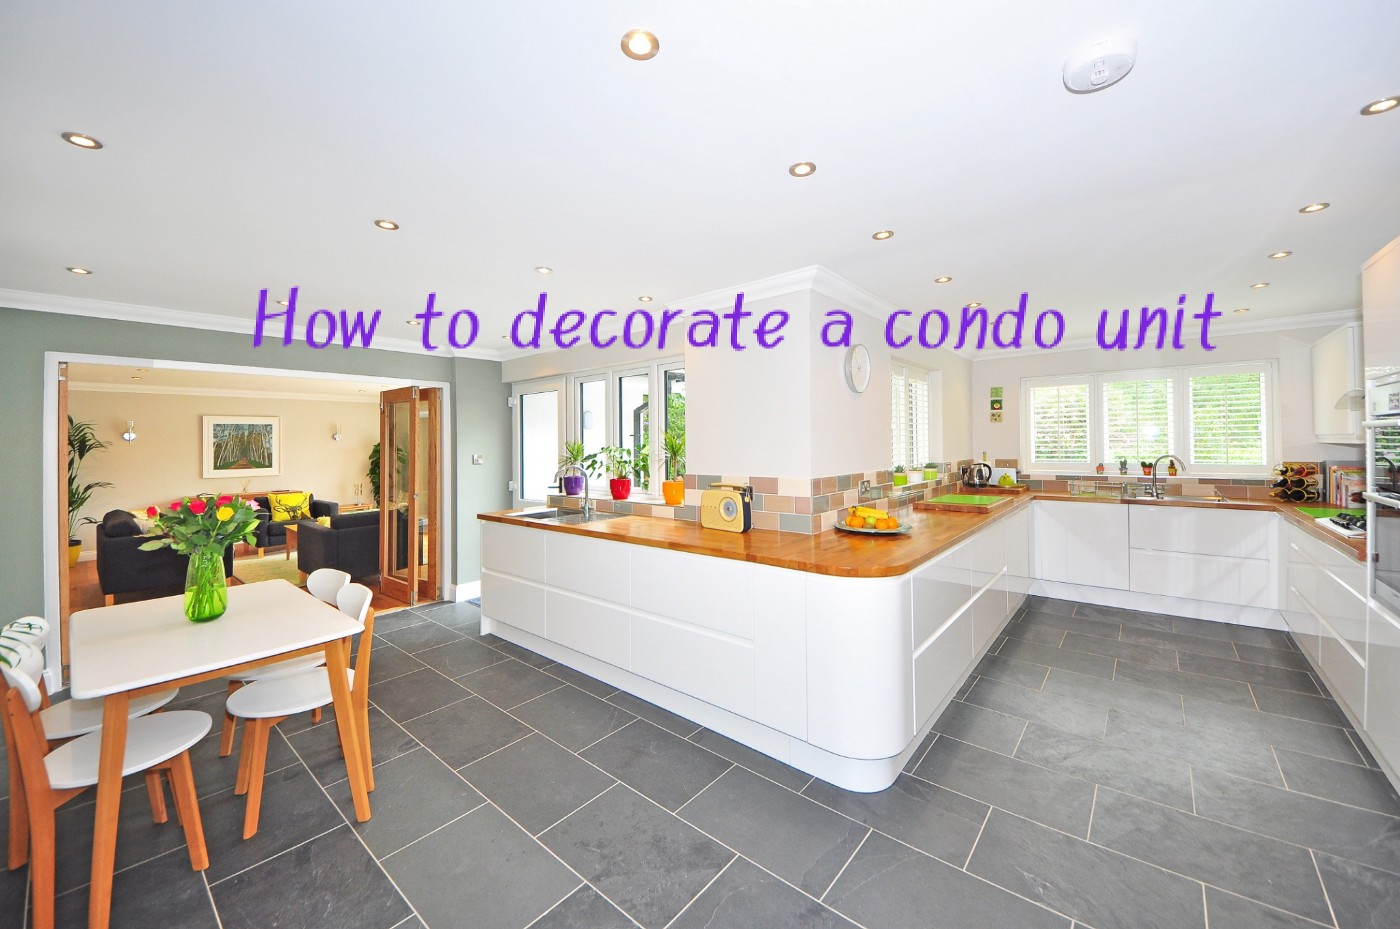 How to decorate a condo